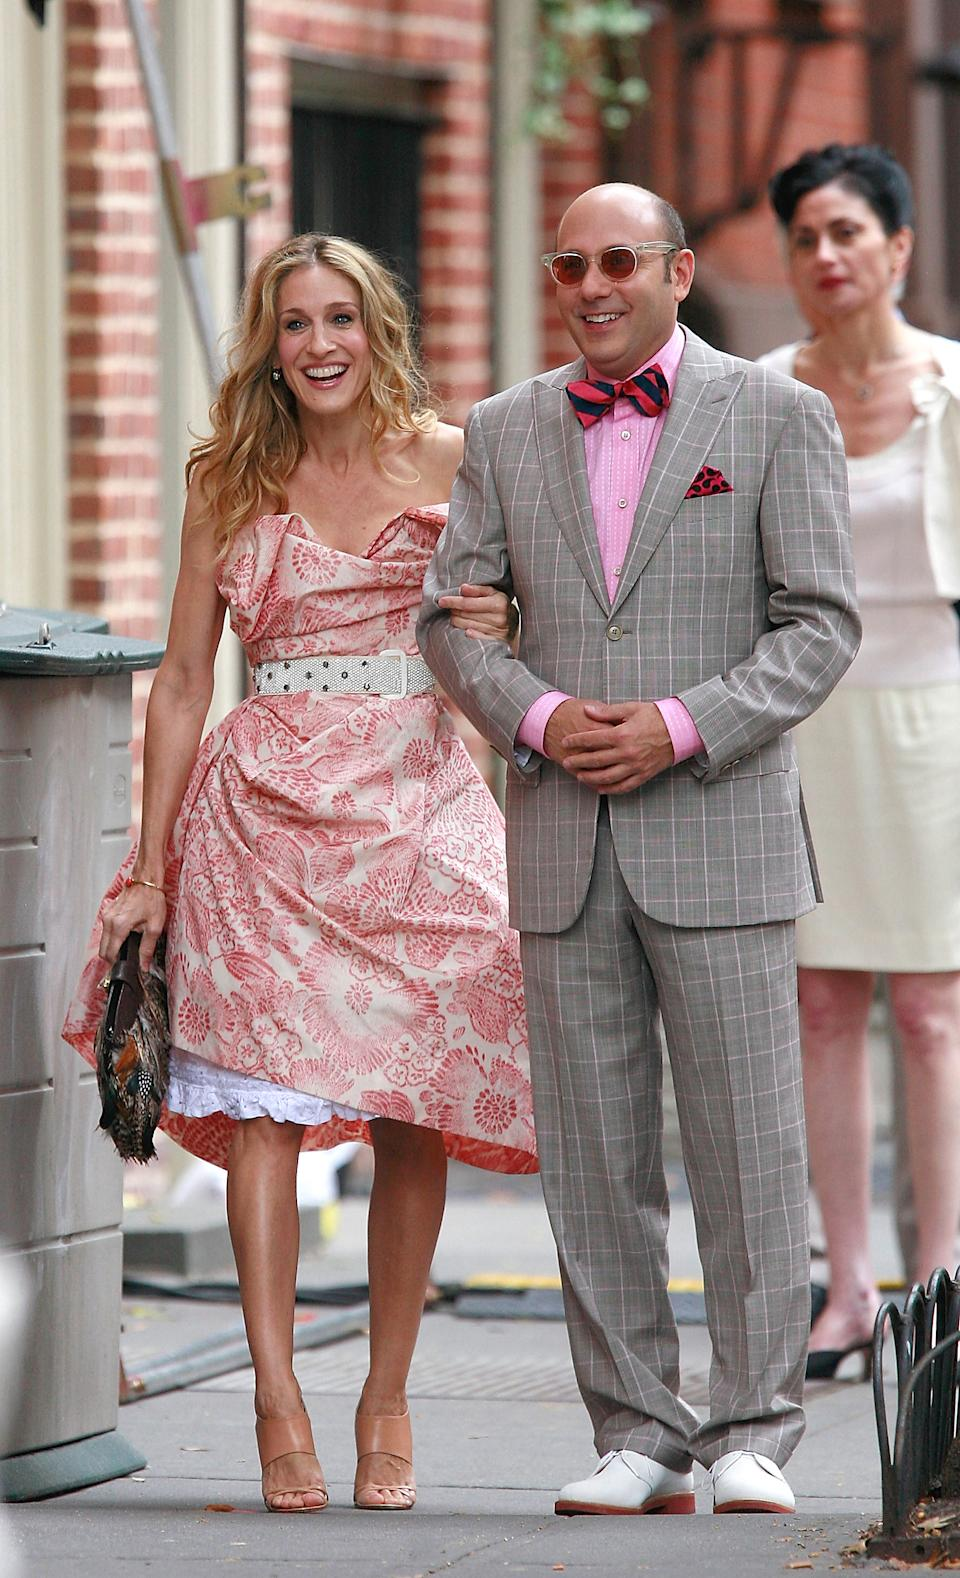 NEW YORK - OCTOBER 01:  Actress Sarah Jessica Parker  and actor Willie Garson sighting filming a scene for the movie